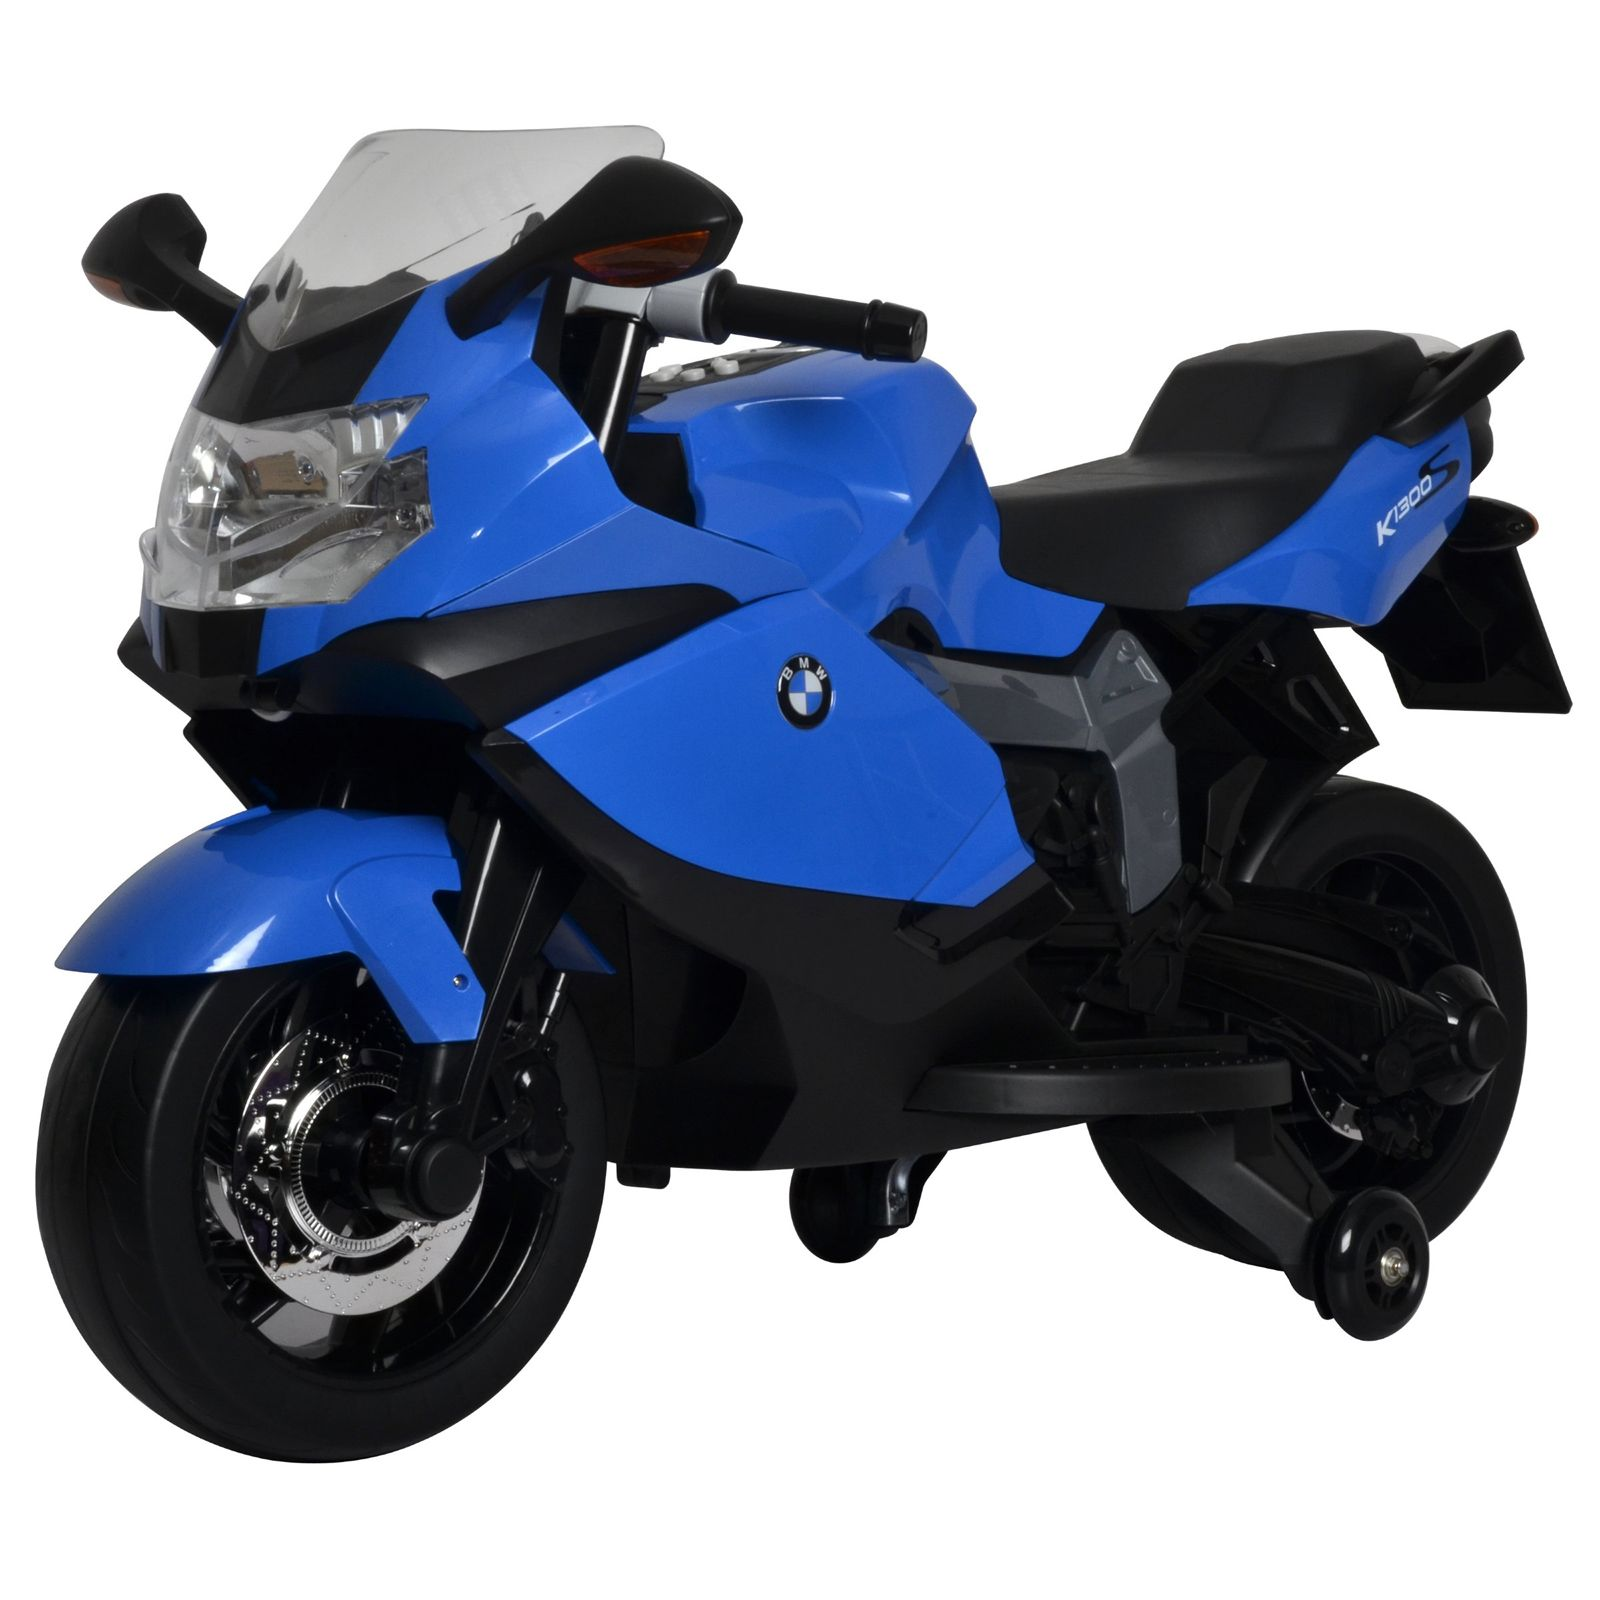 Licensed Bmw Motorcycle 12v Kids Battery Powered Ride On Car Blue Blue Motorcycle Bmw Motorcycle Kids Ride On Toys